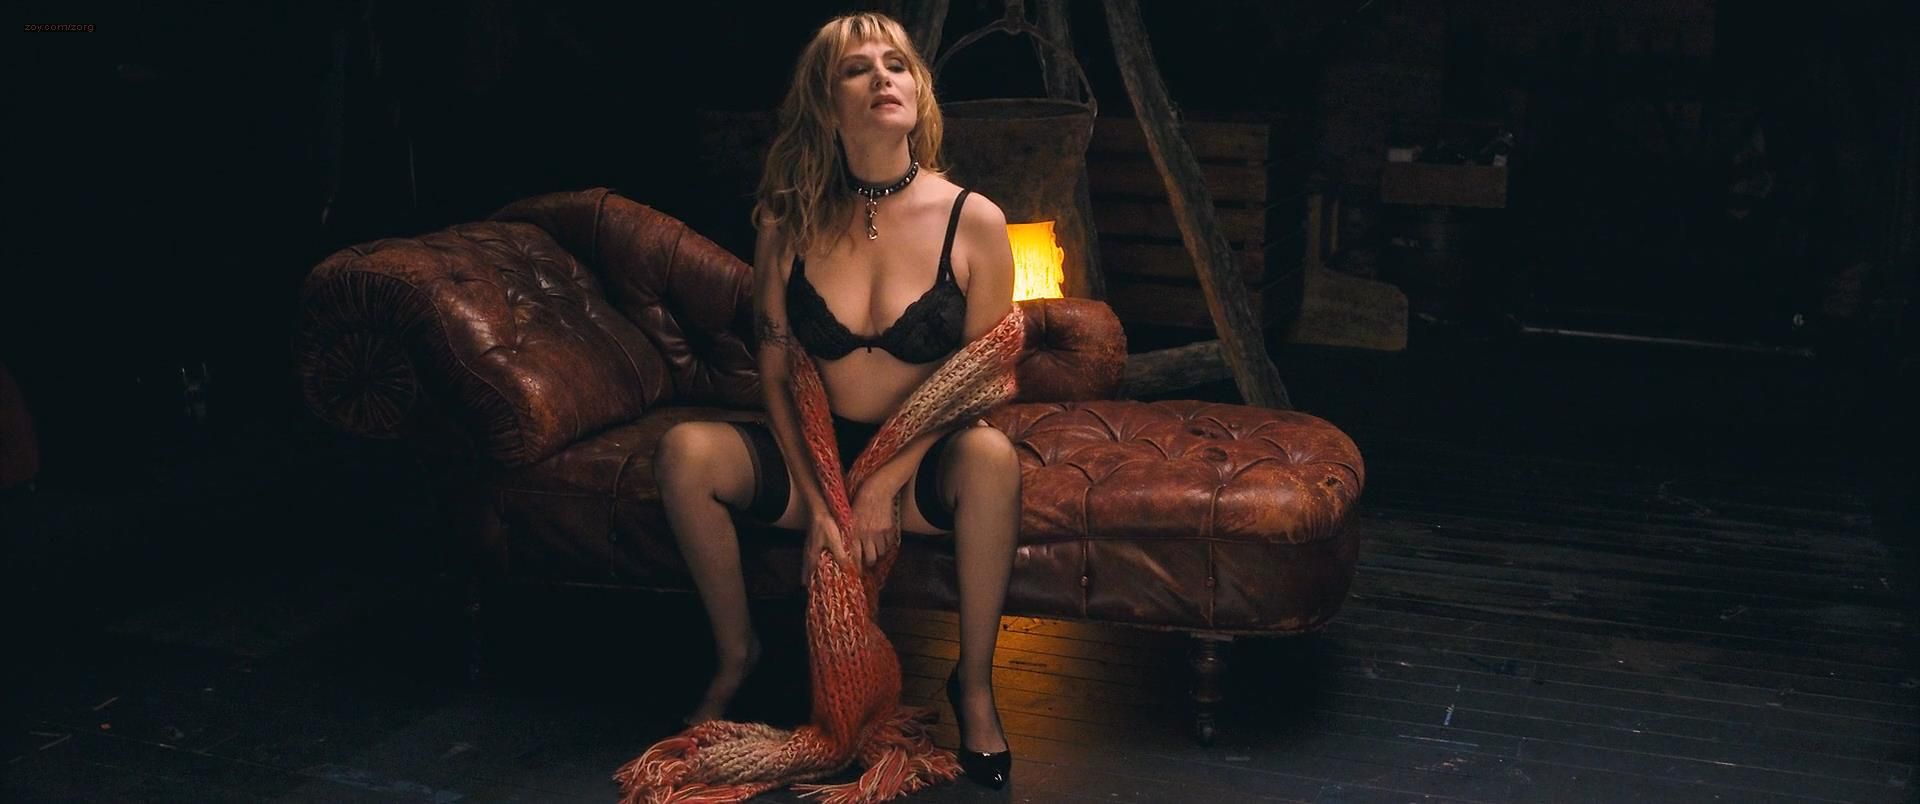 Emmanuelle Seigner hot sexy in lingerie and briefly nude topless in  Polanski's Venus in Fur (2013) hd1080p ...